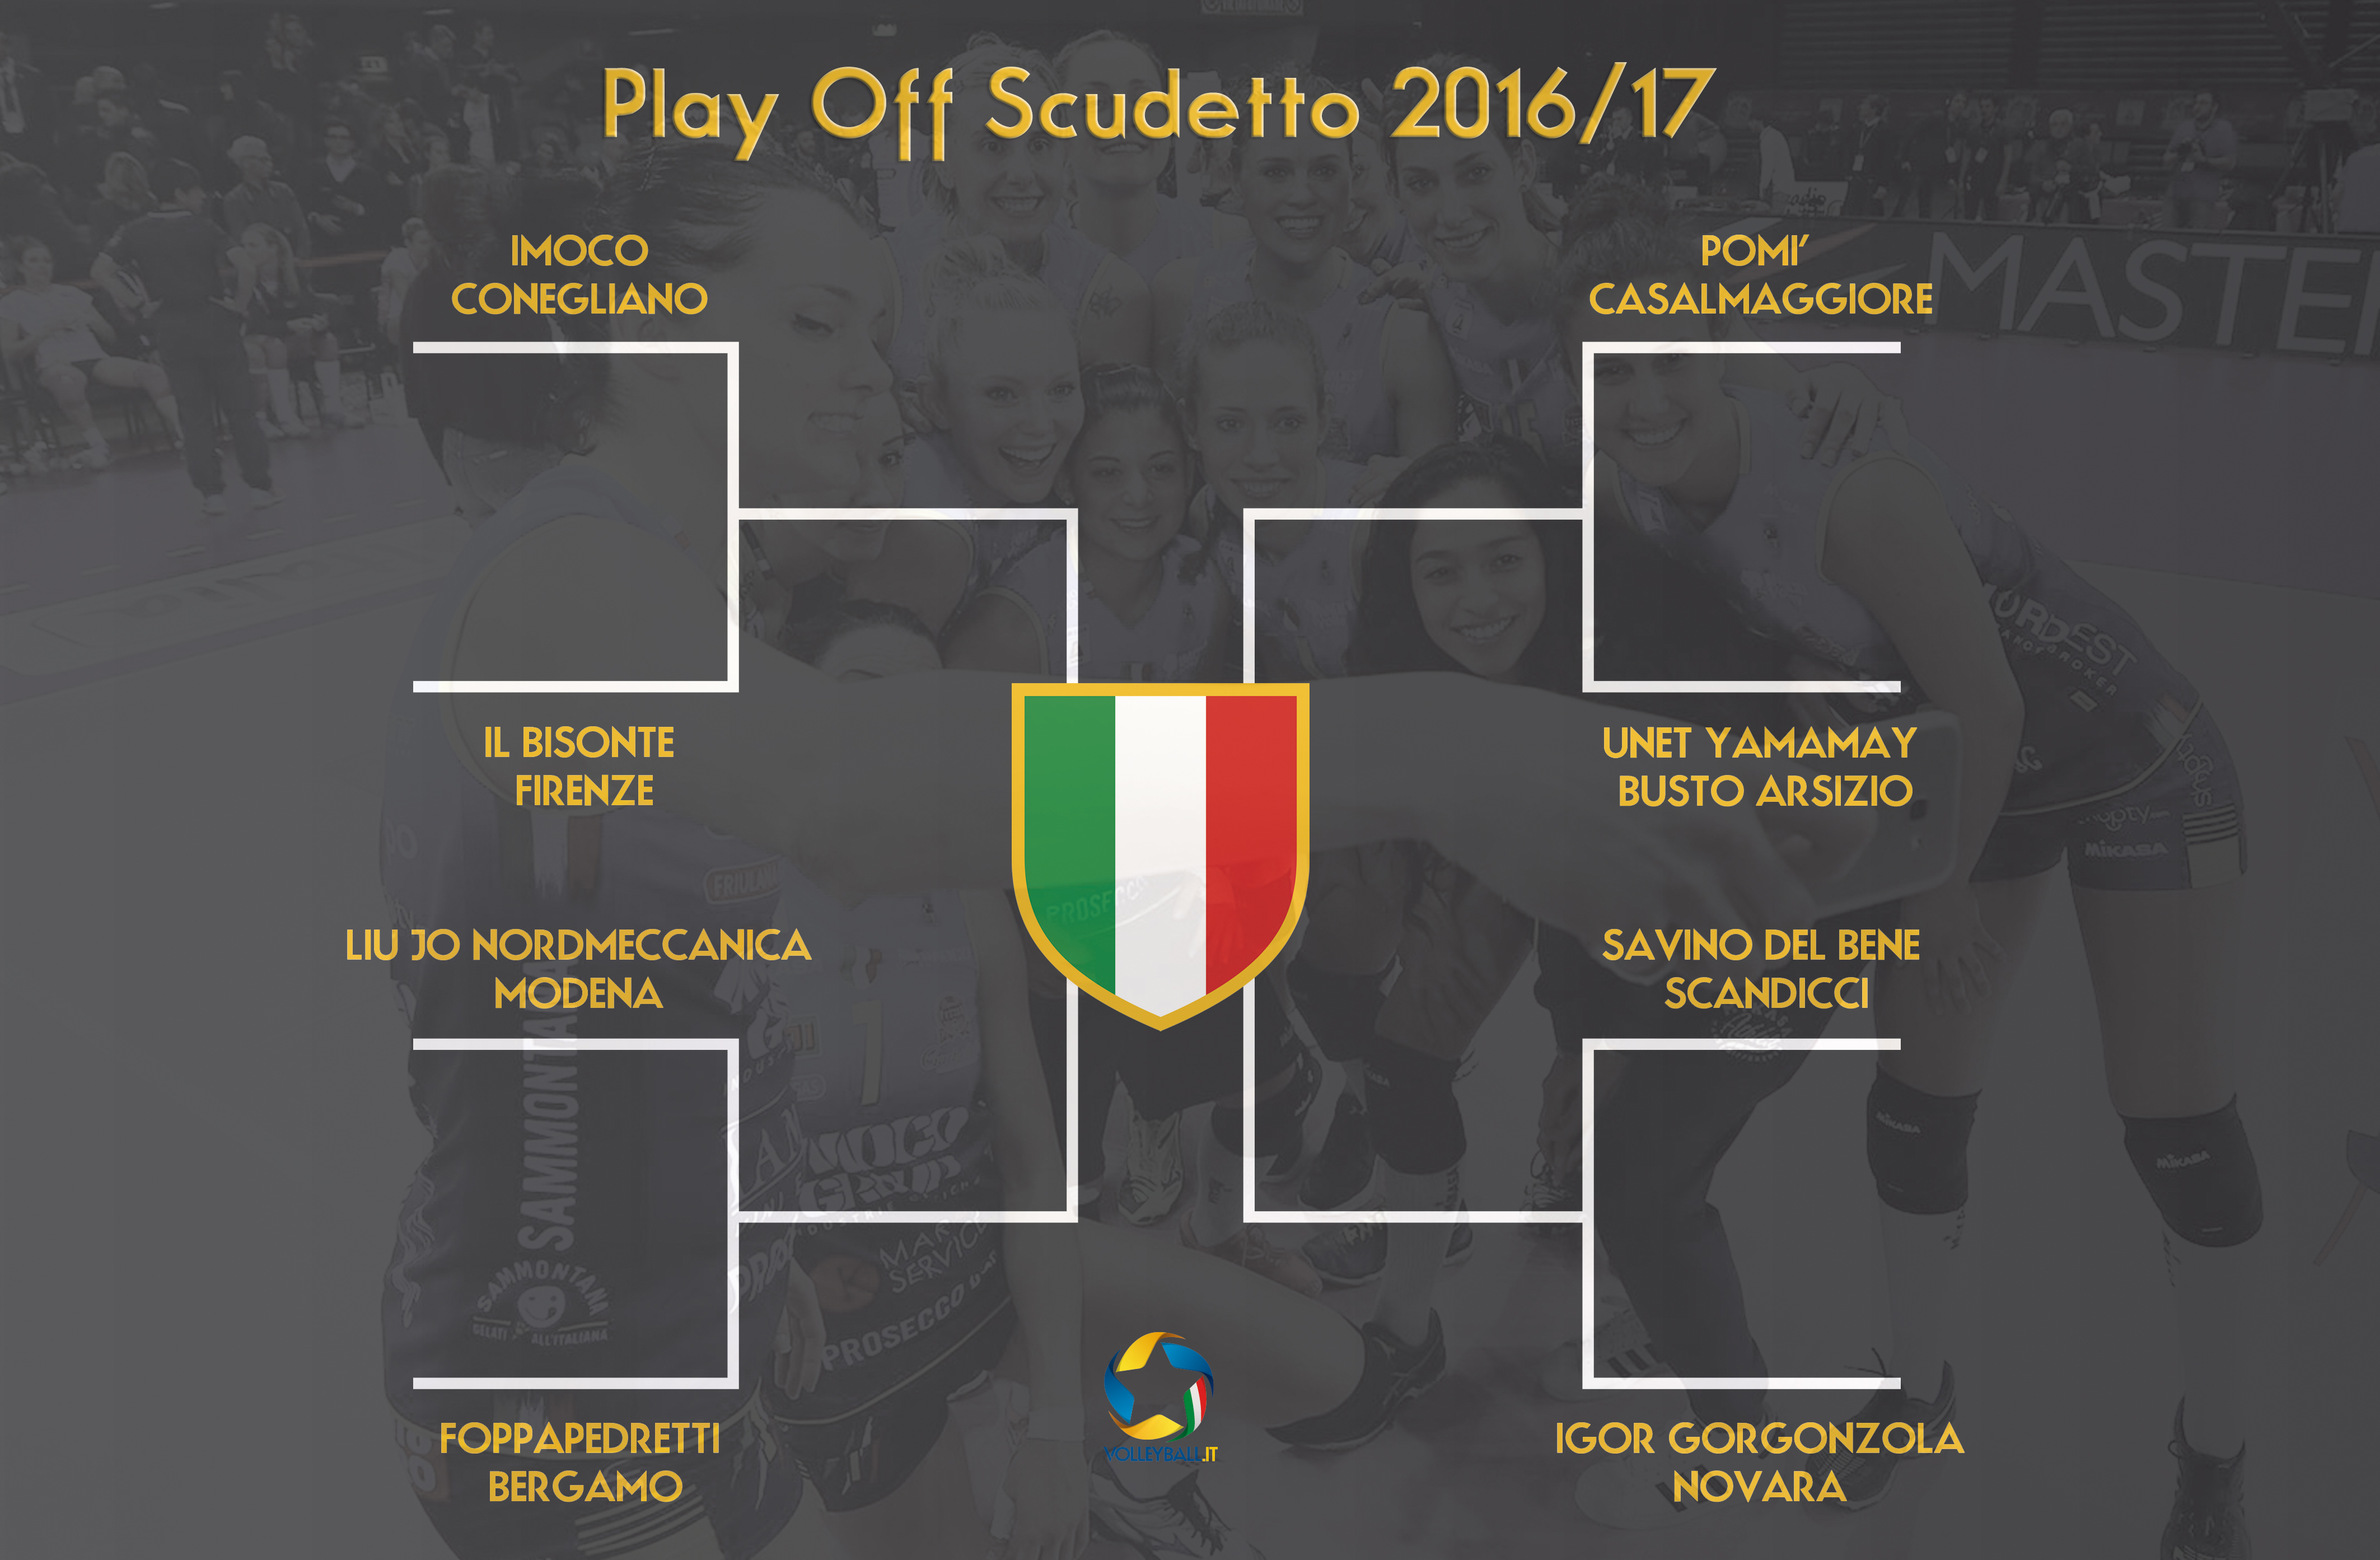 Calendario Quarti Mondiali.Play Off A1 Femminile Il Calendario Dei Quarti Di Finale